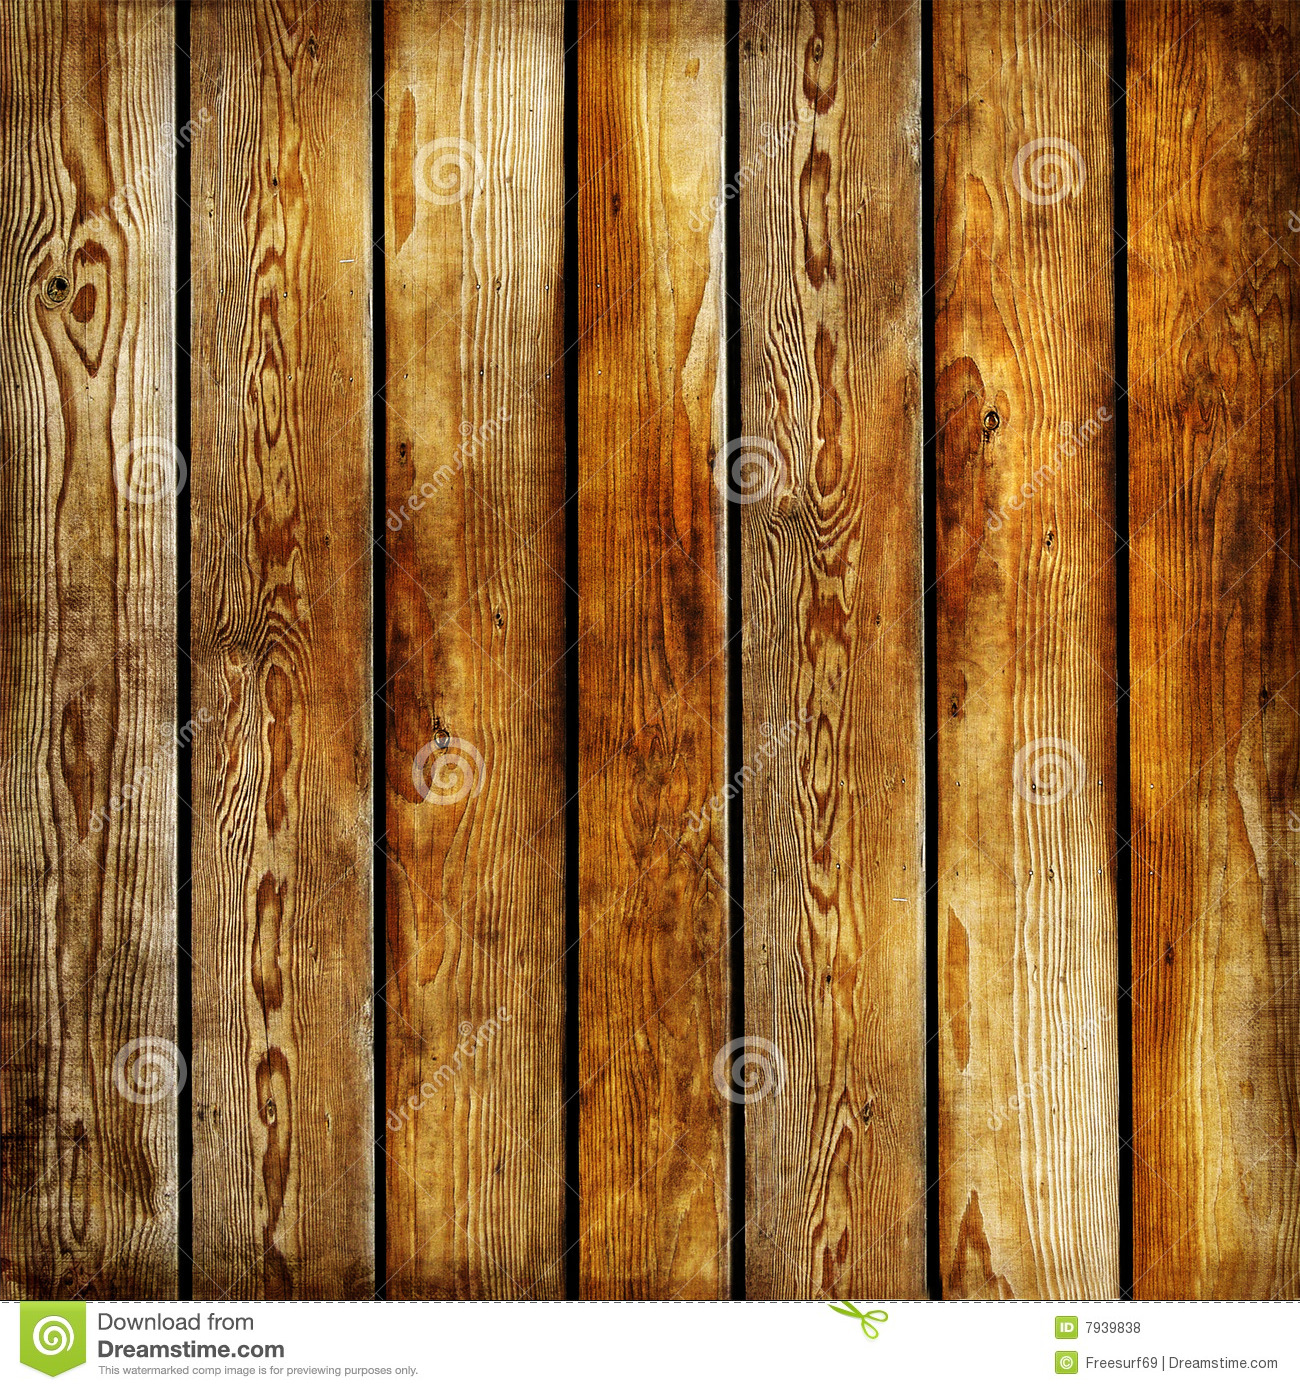 Http Www Dreamstime Com Royalty Free Stock Photos Wooden Planks Image7939838